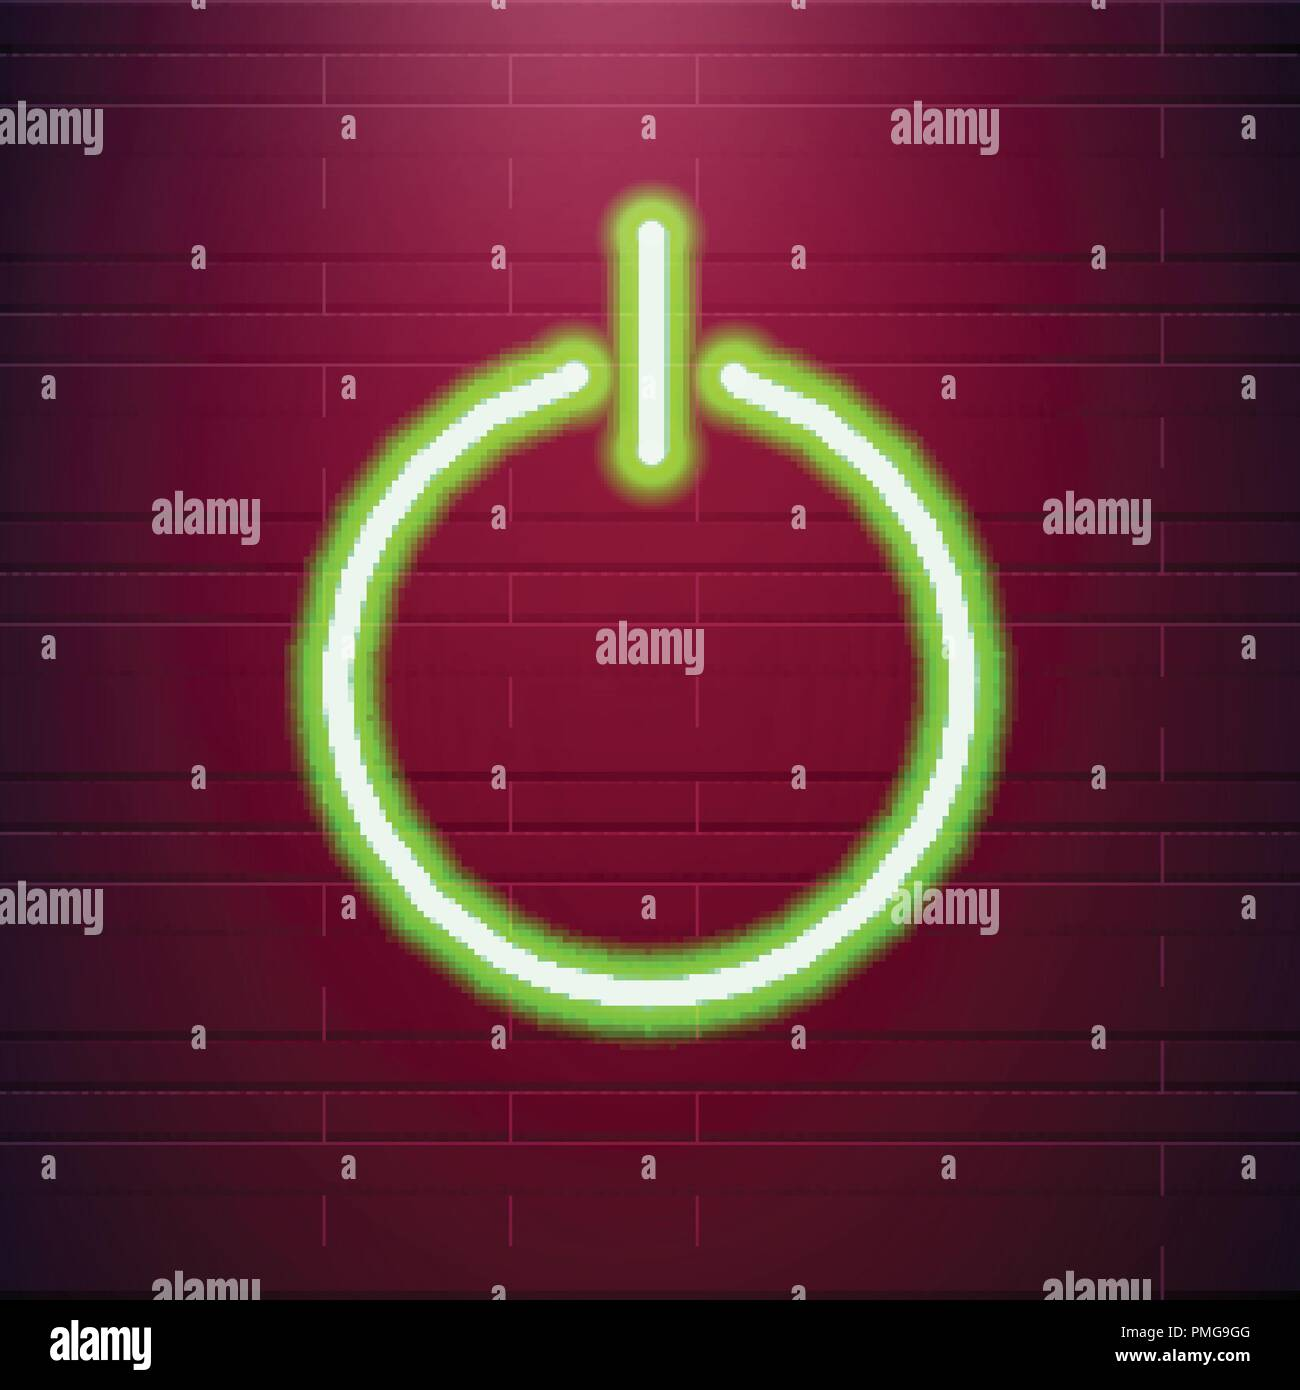 On and Off lamp Neon light Toggle switch button. Vector illustration. Fluorescent light vector illustration - Stock Image